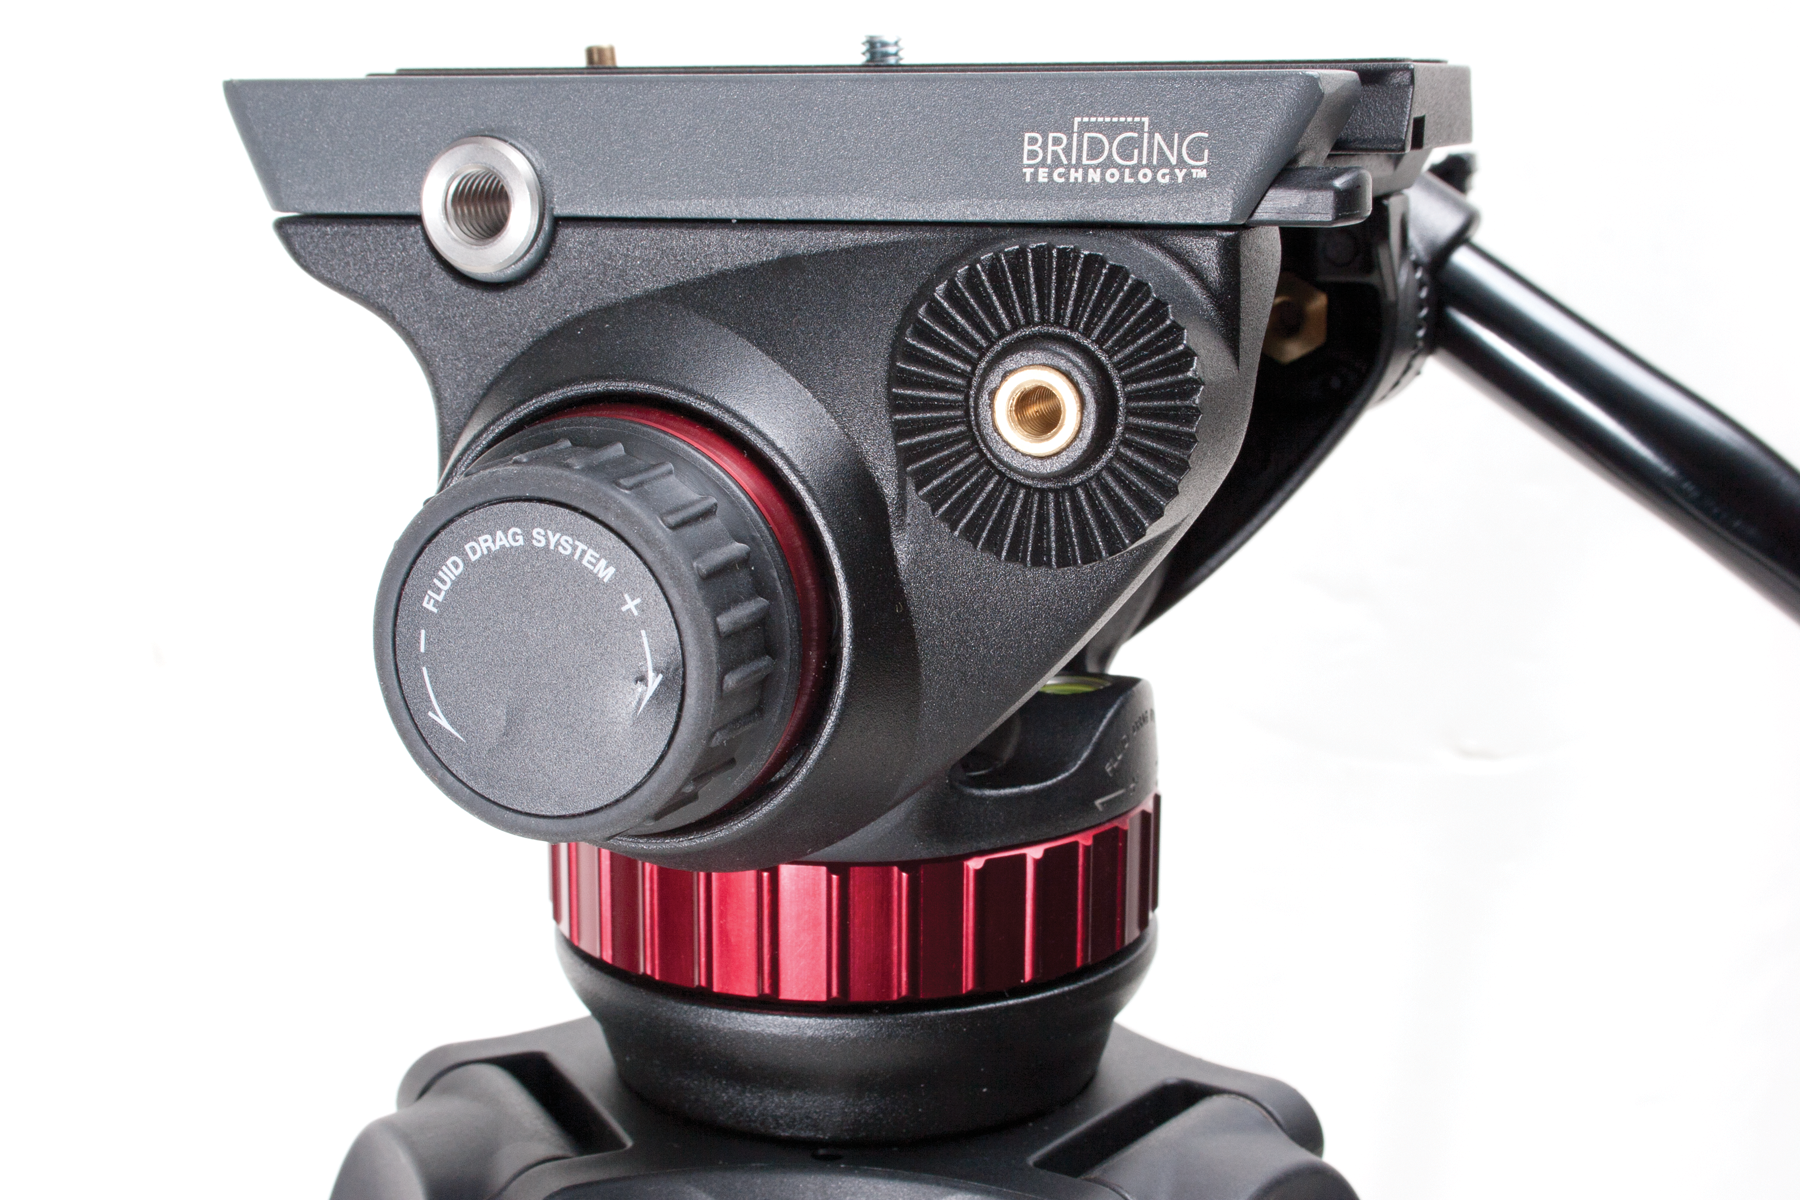 Photo of the fluid drag system on the Manfrotto 502 tripod